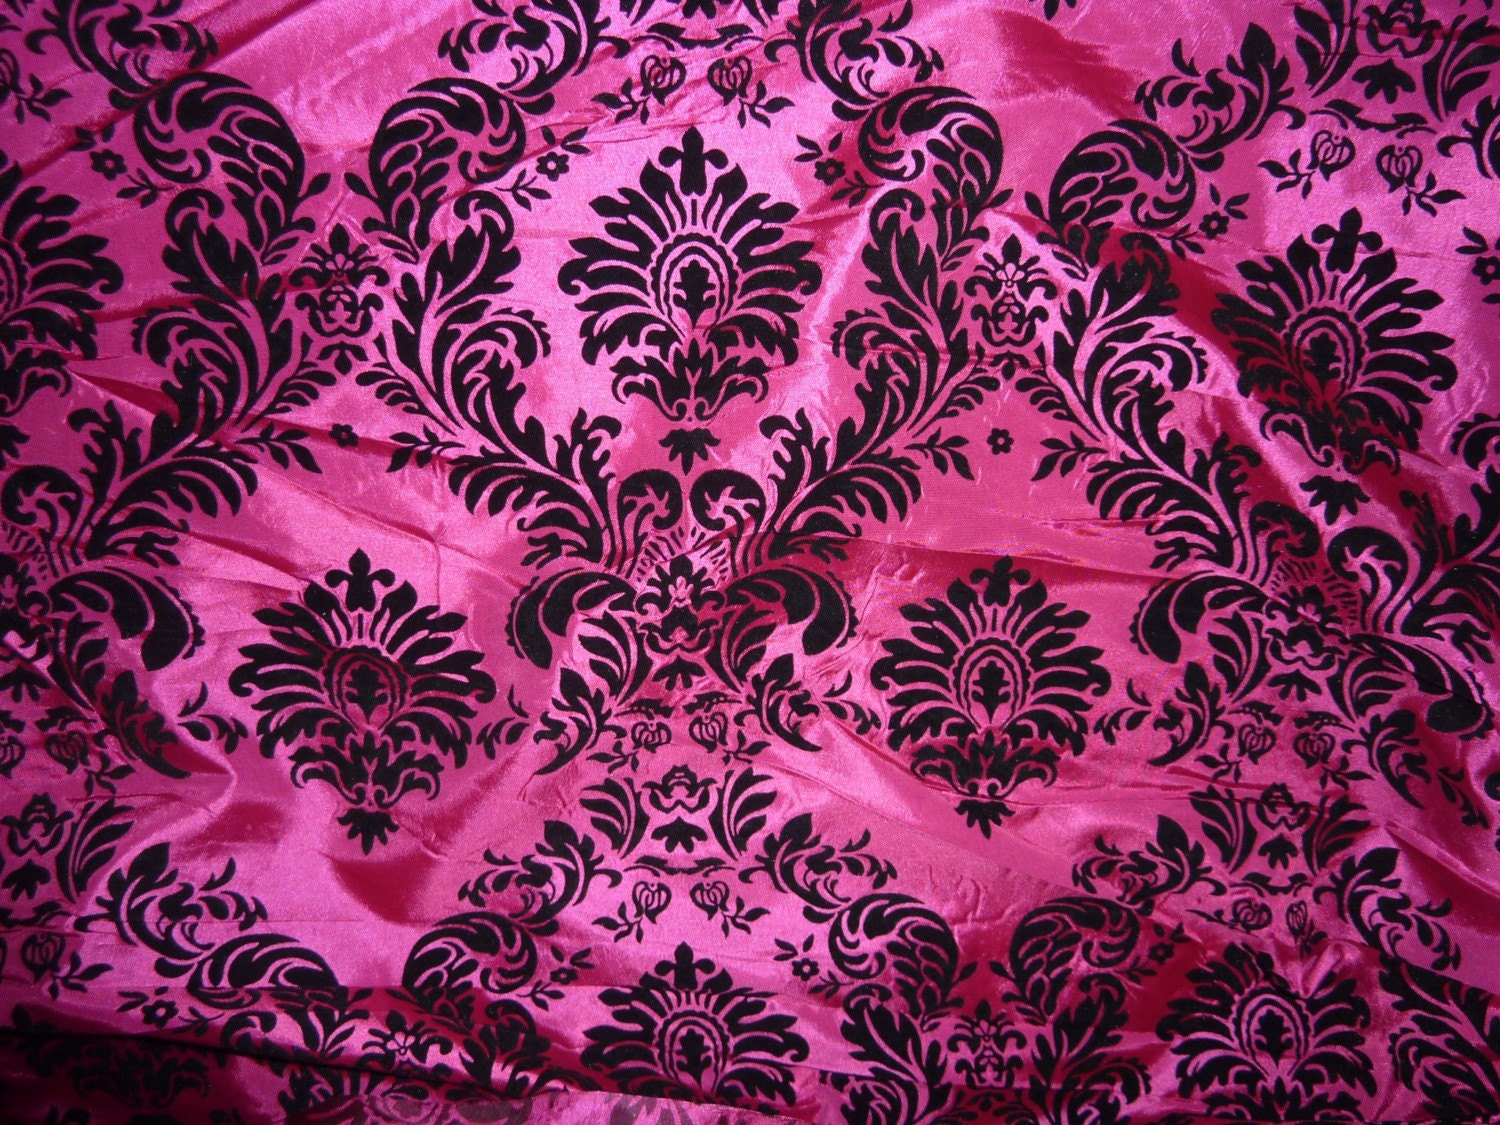 Damask Fabric HOT Pink color 4 yards